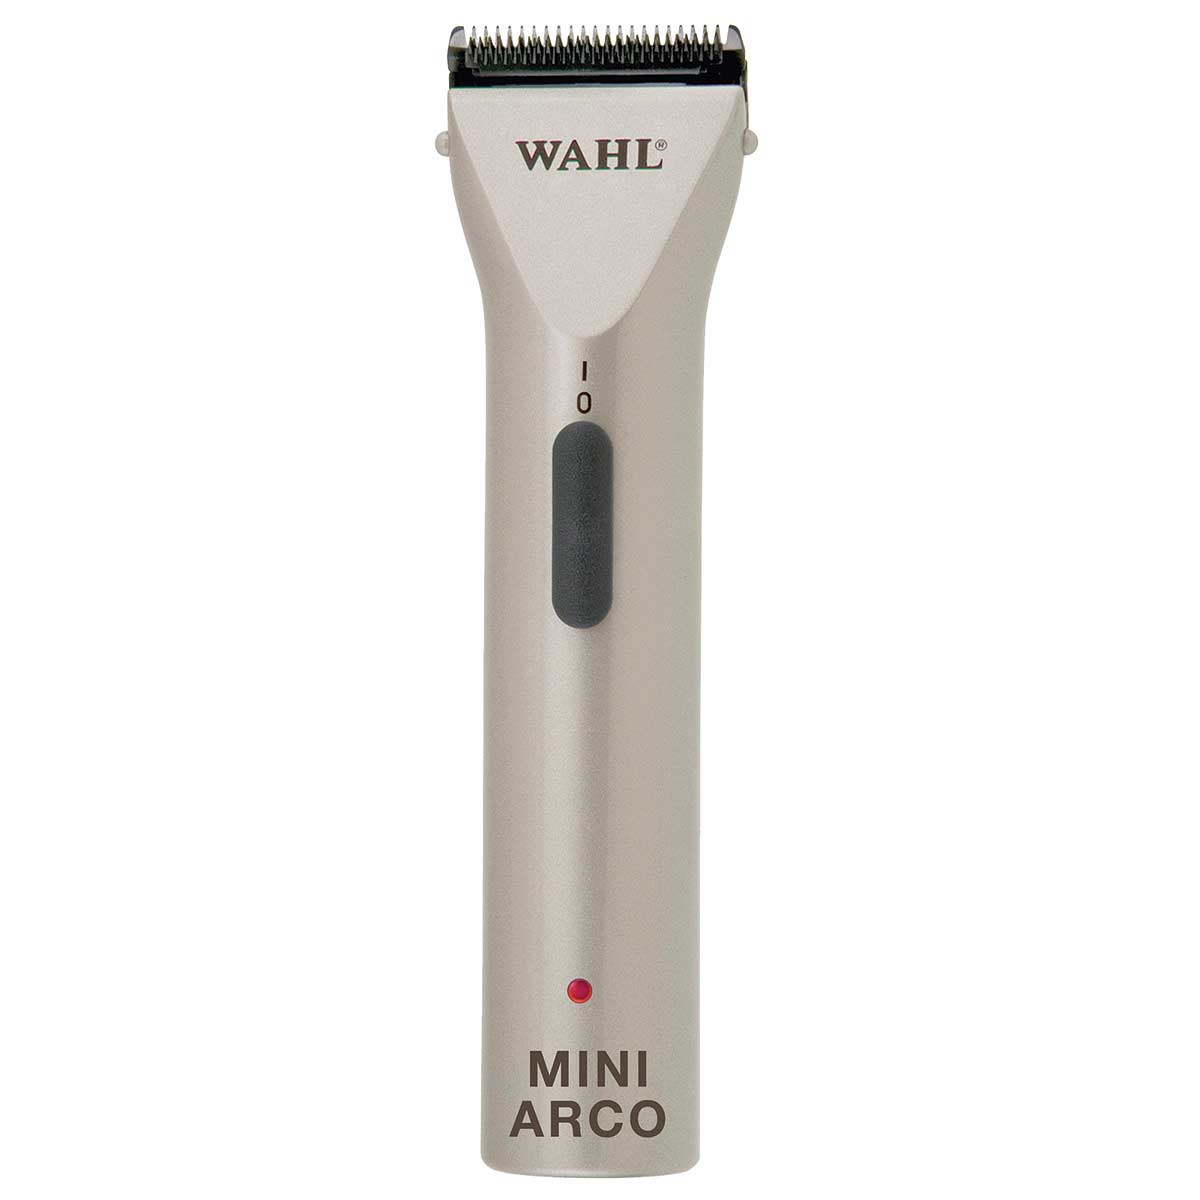 Wahl MiniArco Cord/Cordless Trimmer for Pet Grooming